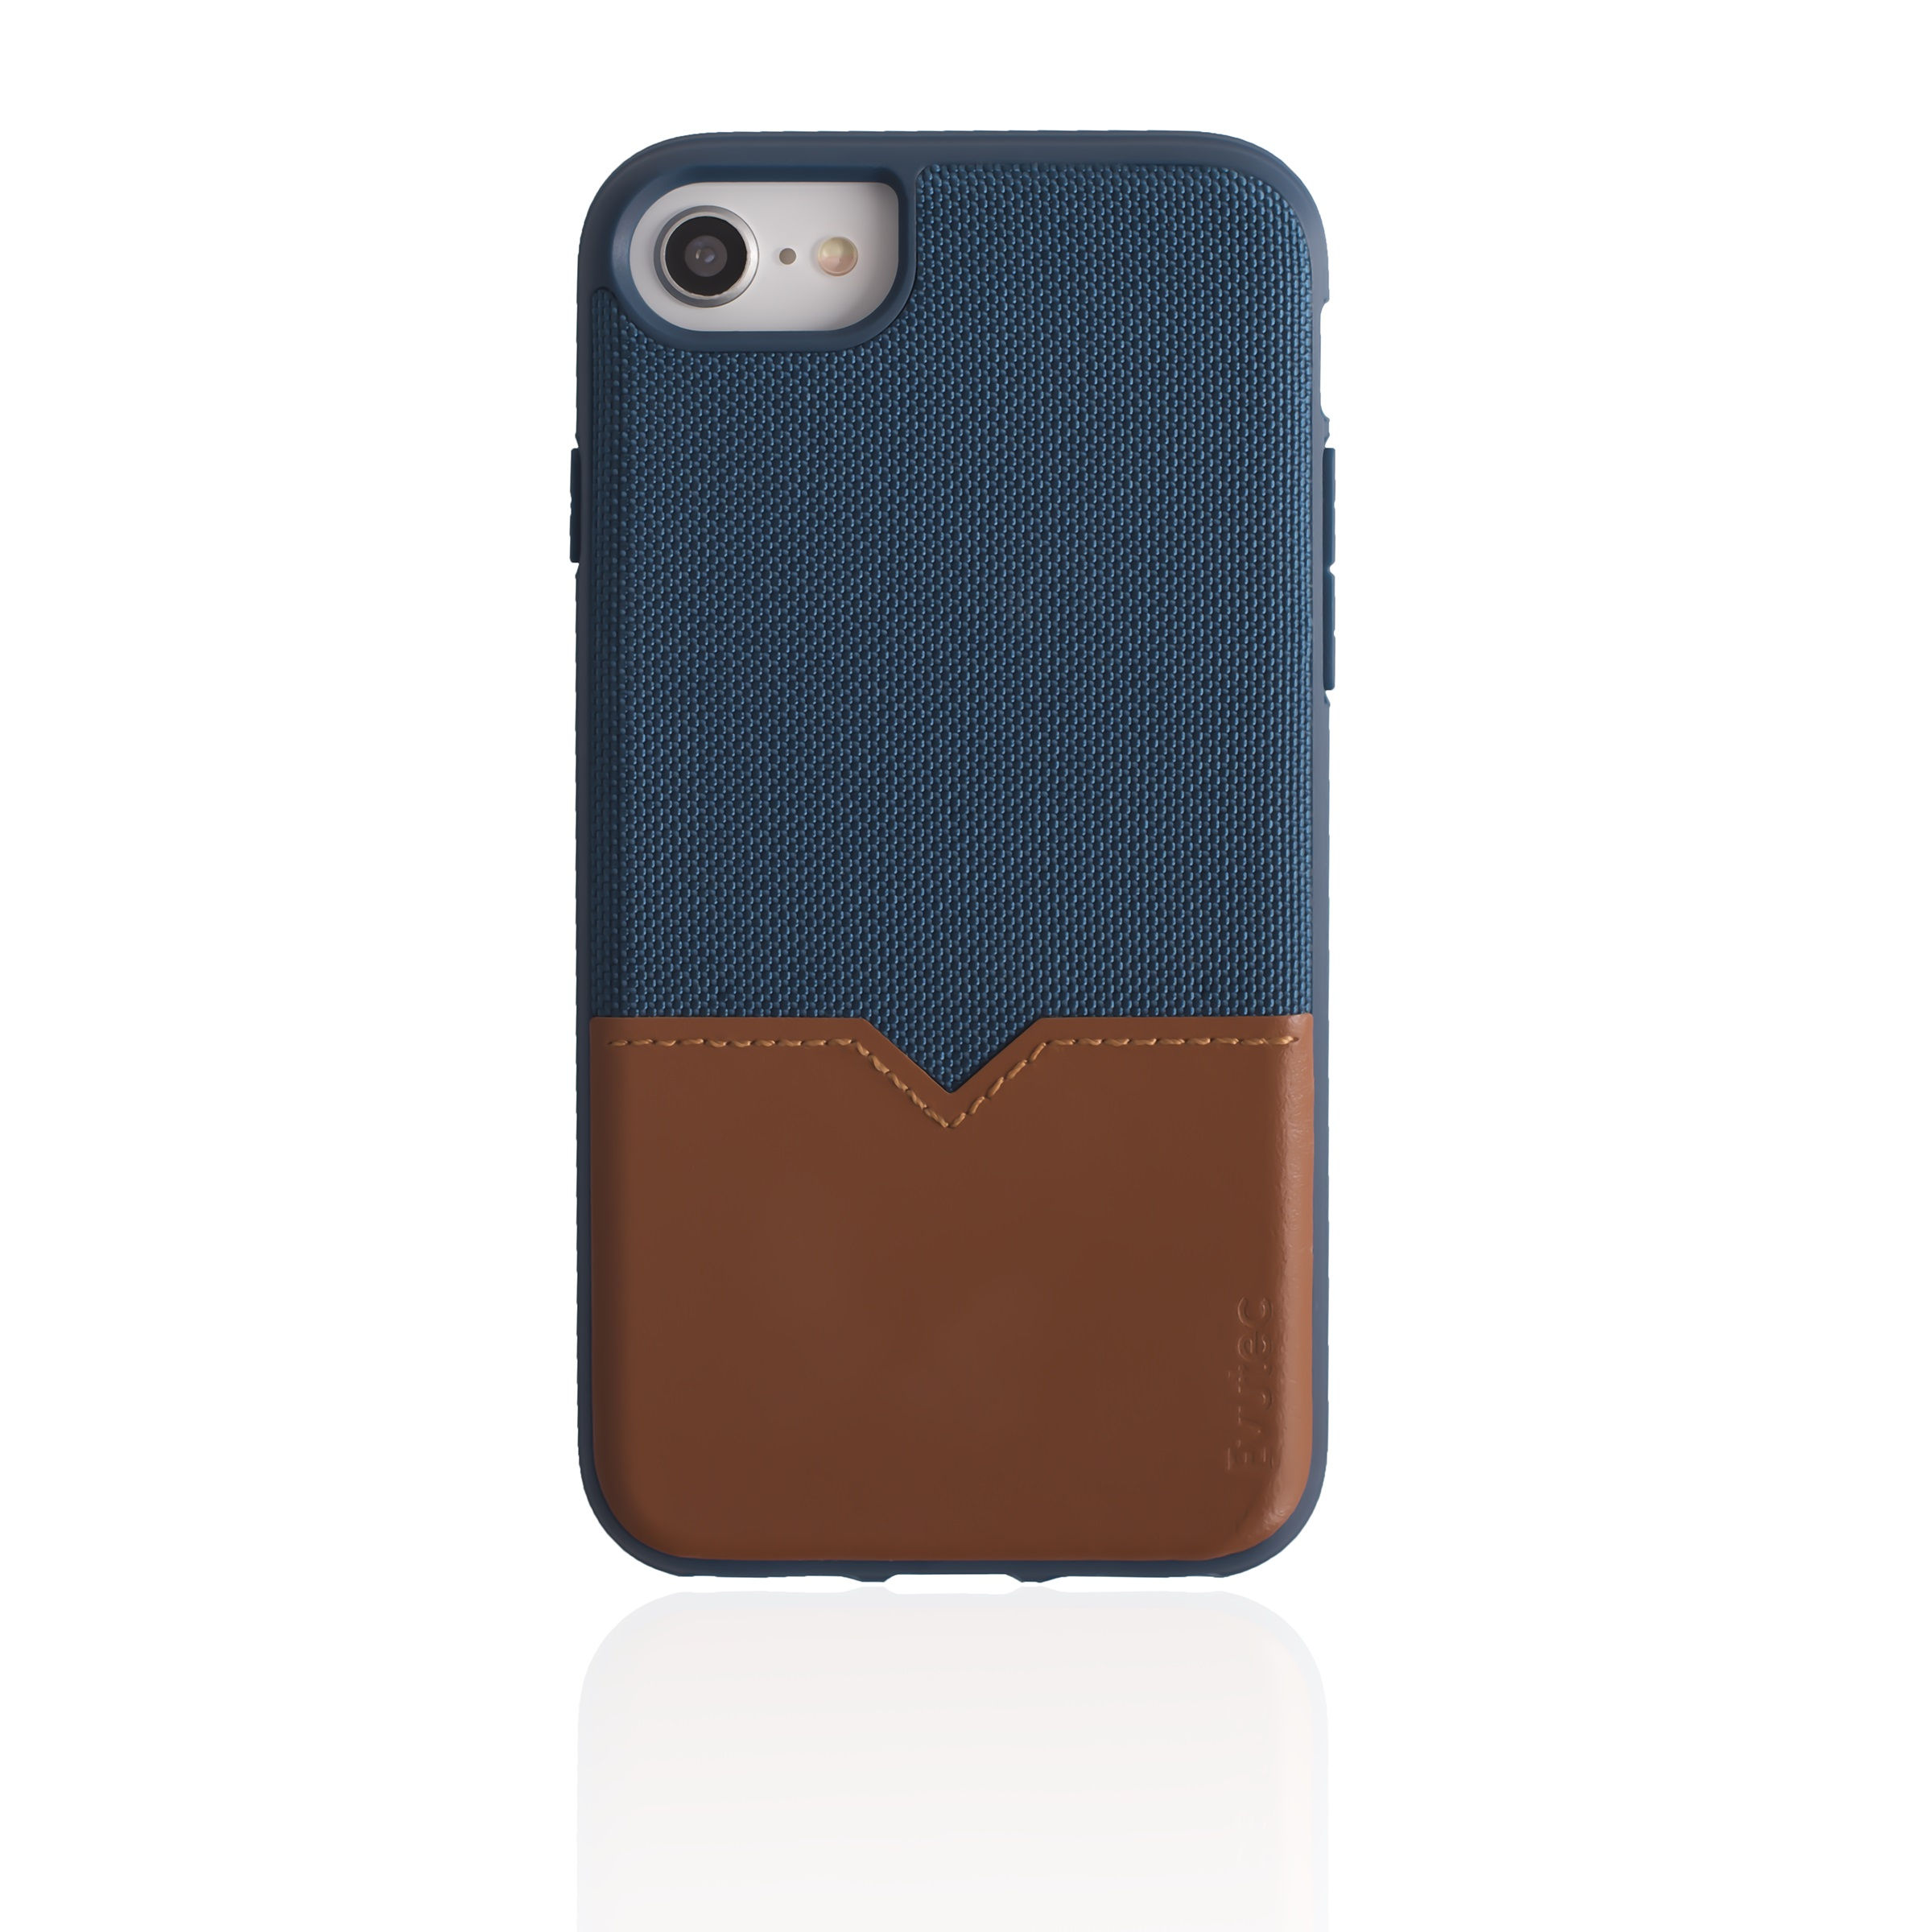 EVUTEC NH680MTD03 BLUE IPHONE CASE FOR 6 6S 7 7S & 8 WITH